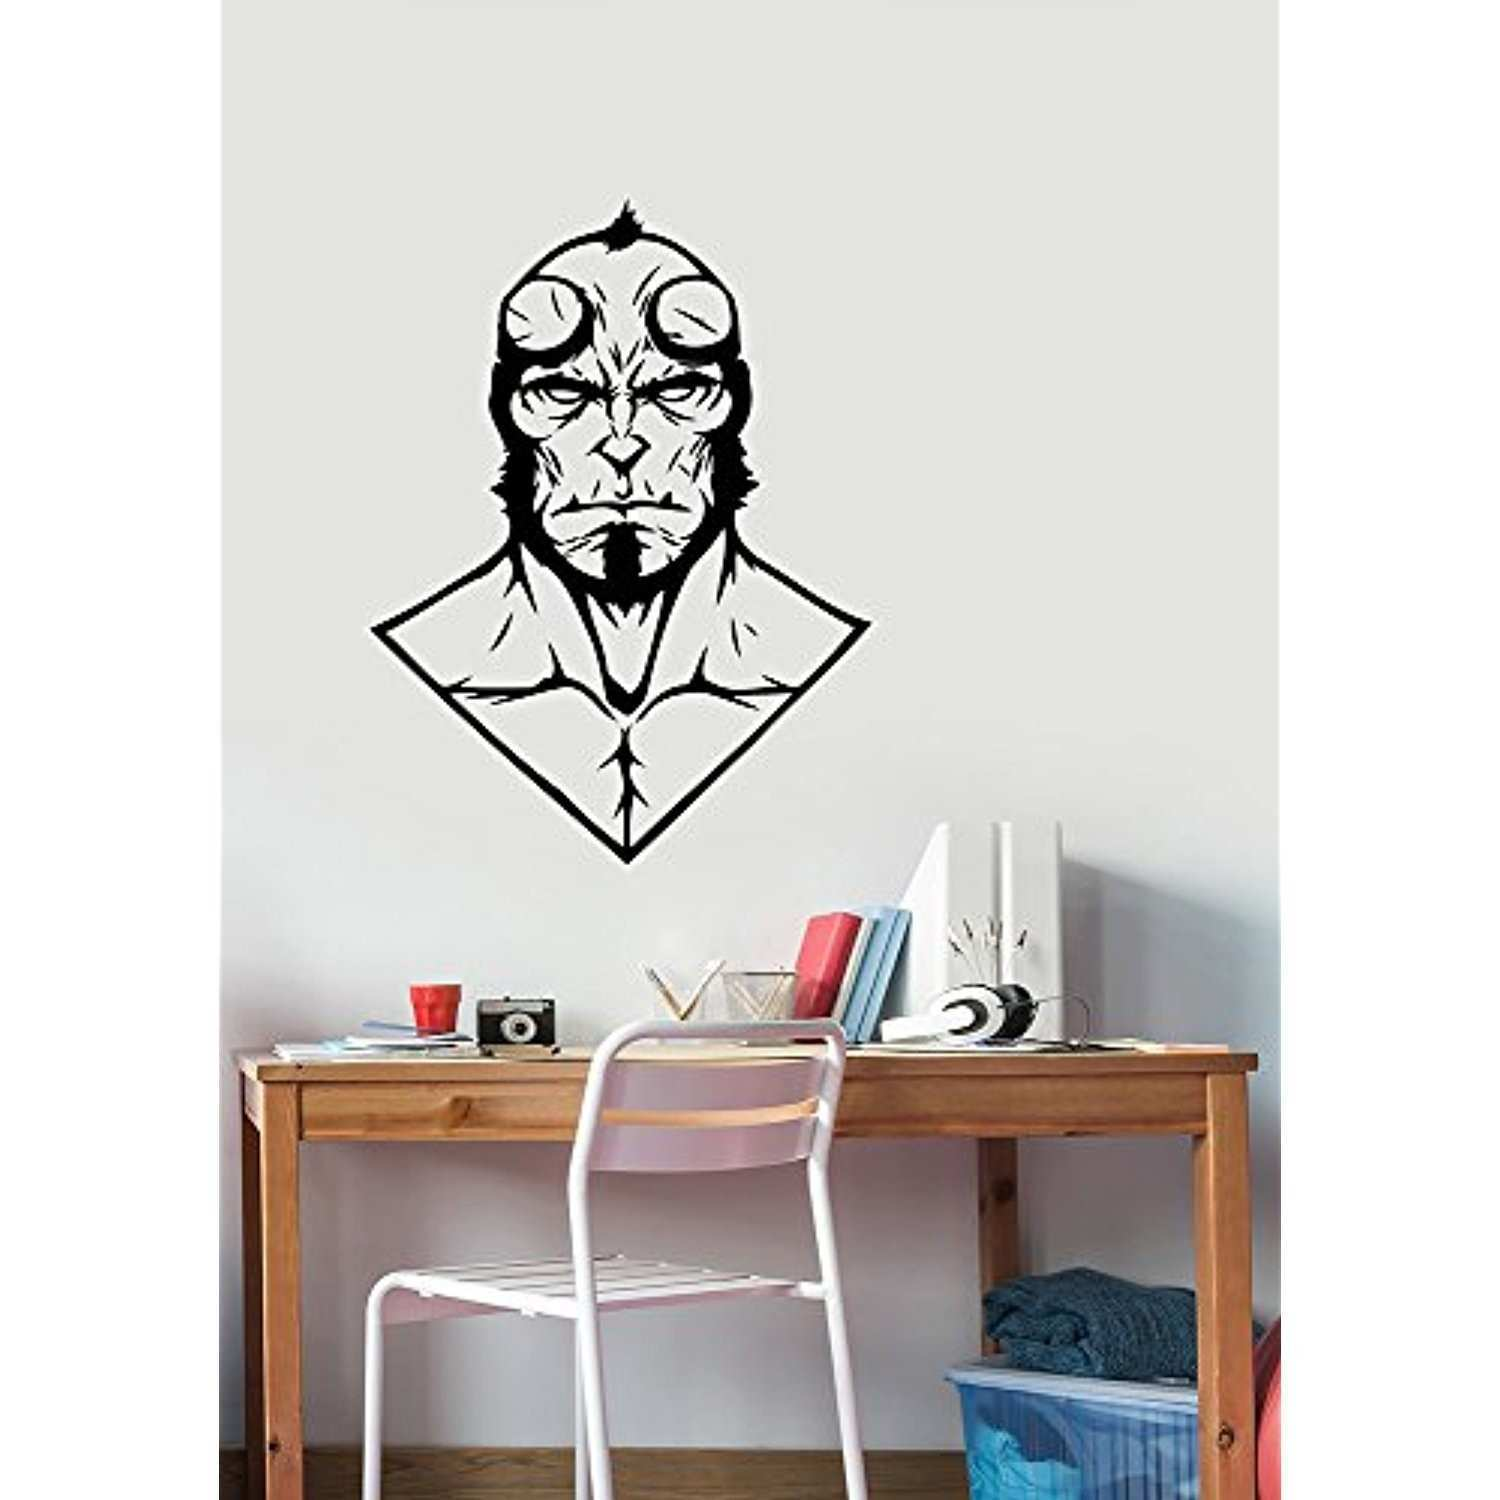 Metal Hanging Picture Frames Beautiful Wall Decals for Bedroom